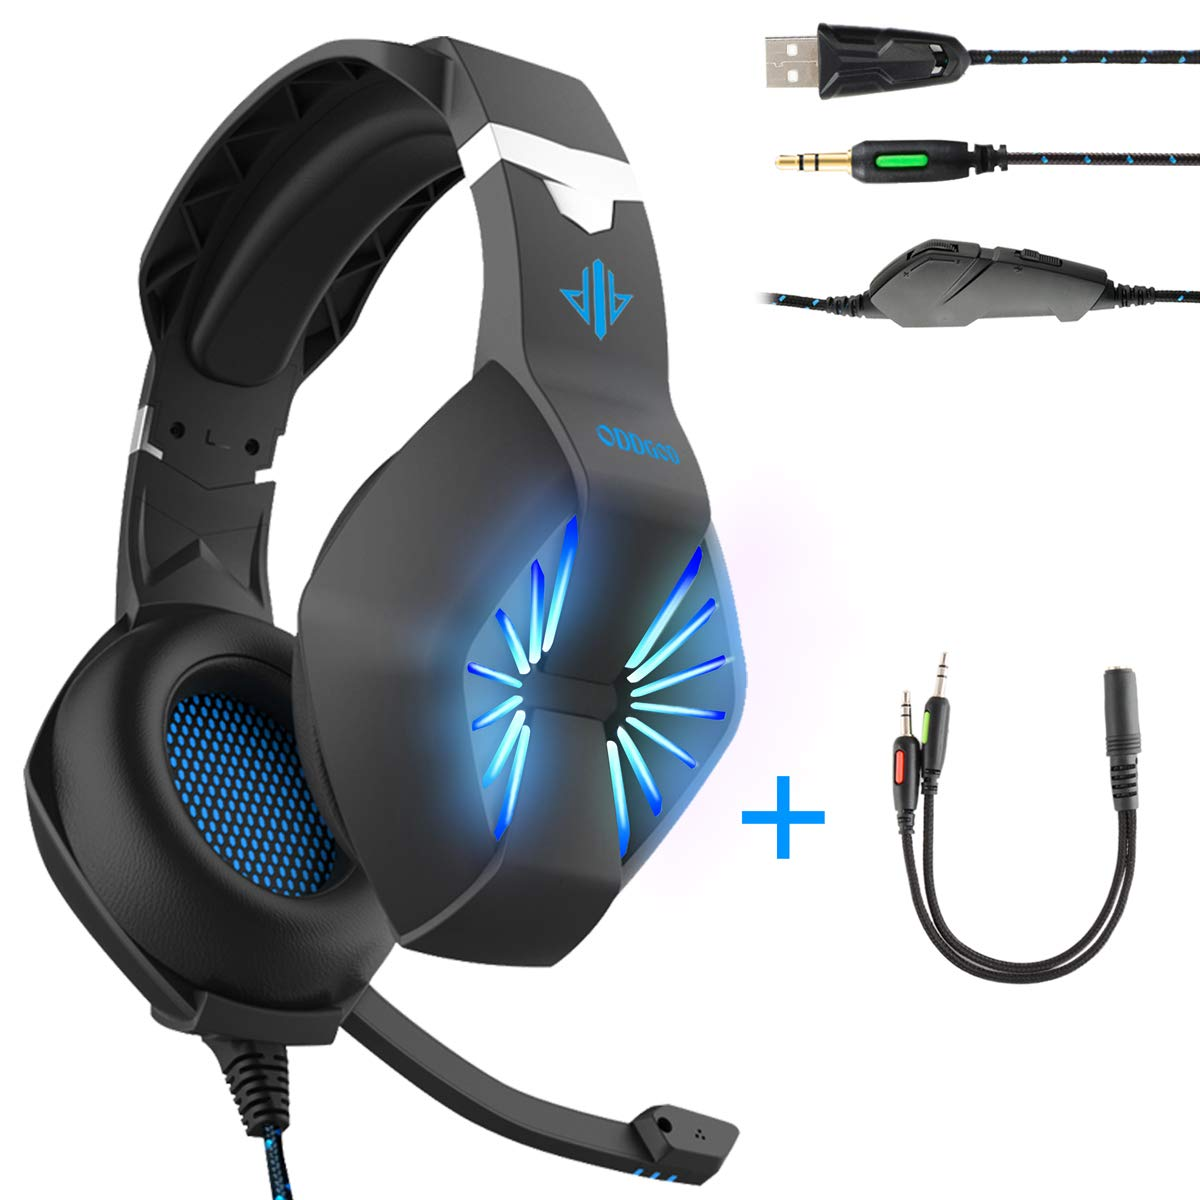 Gaming Headset-3.5MM Jack & USB Wired Over Ear Headphone with Mic and Stunning LED Light for PC,PS4,Xbox,Tablet,Smartphones-Noise-isolating/Stereo Sound/Soft Memory Earmuffs(Black) 141[並行輸入] B07D7N454Y